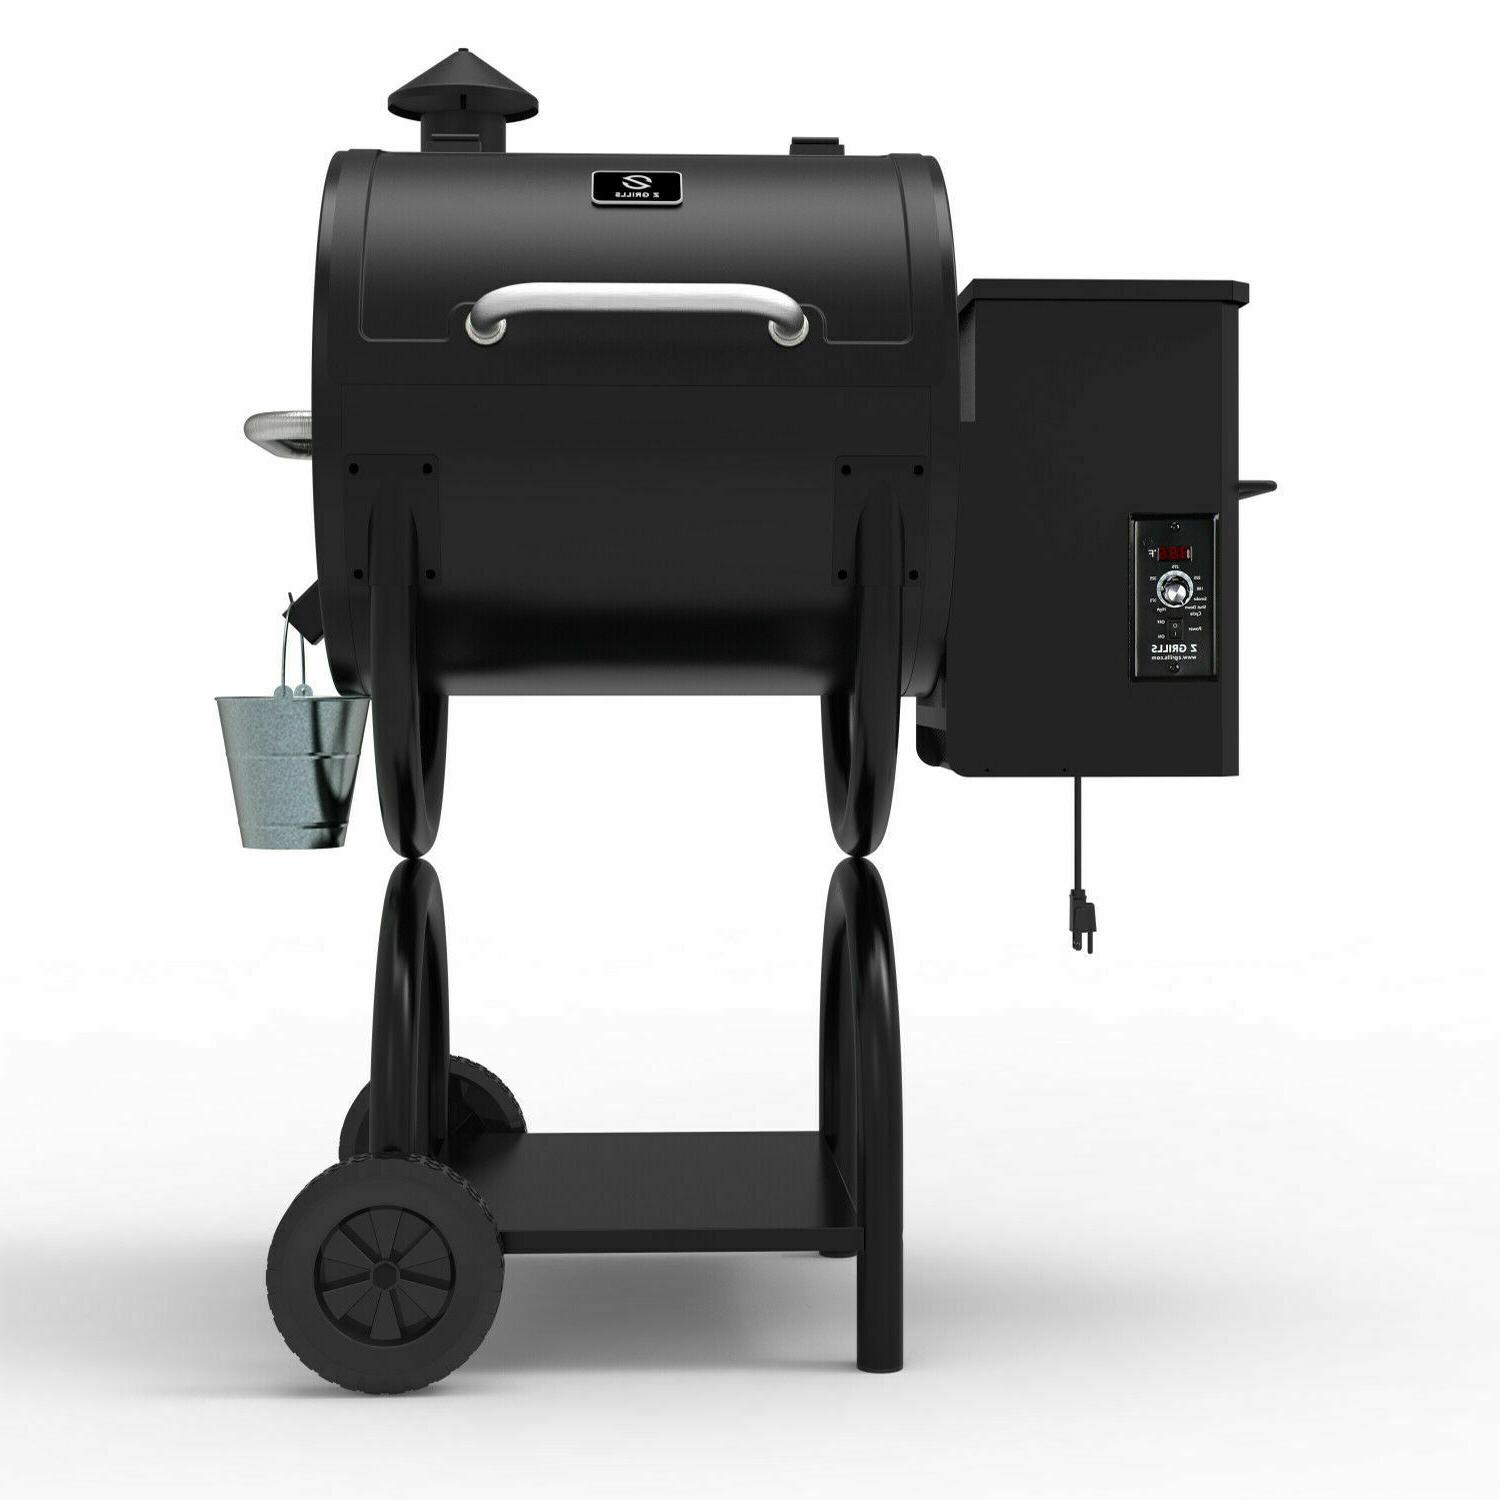 Z GRILLS ZPG-550A New Pellet Grill& with Digital Control